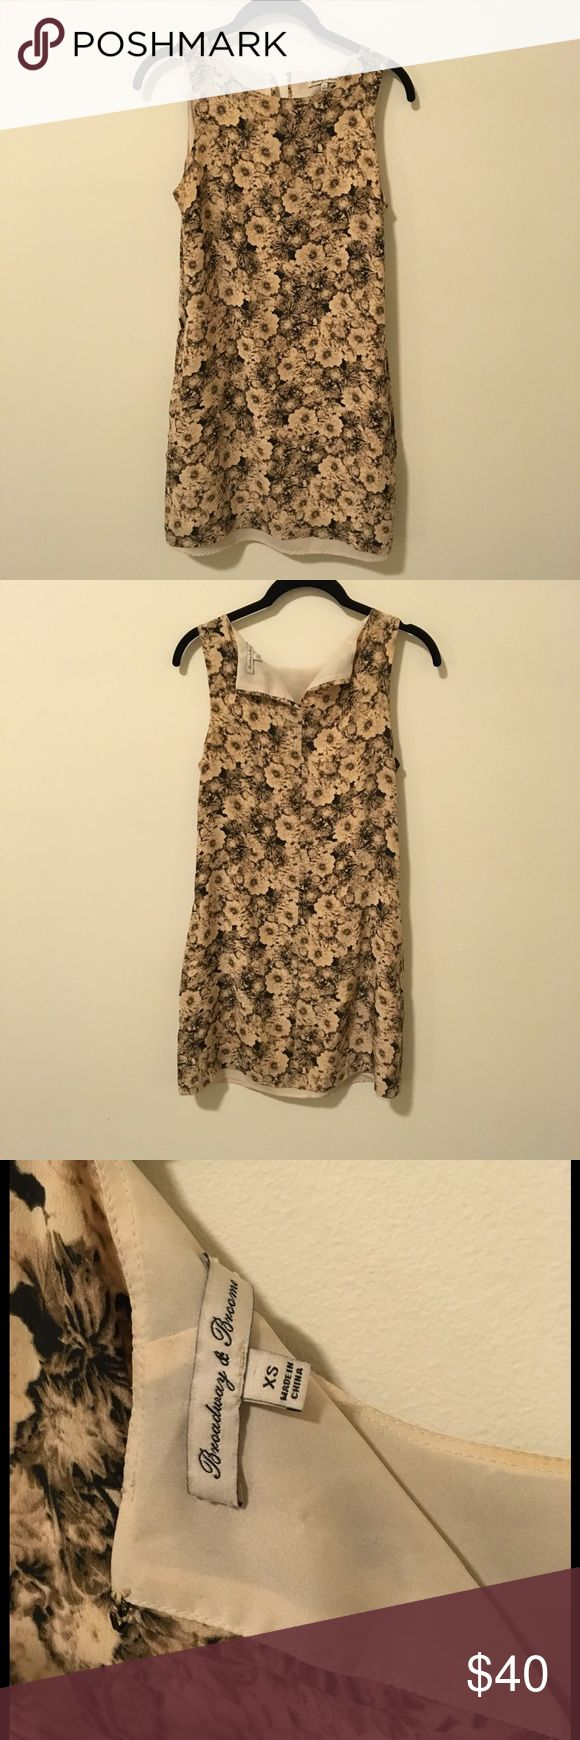 Broadway & Broome Sepia Silk Floral Shift Dress Broadway and Broome by Madewell floral silk dress with a sepia colored body and is sleeveless. Lined and is shifty -  the back button for the top closure is missing and can easily be replaced! Size extra small. Madewell Dresses Mini